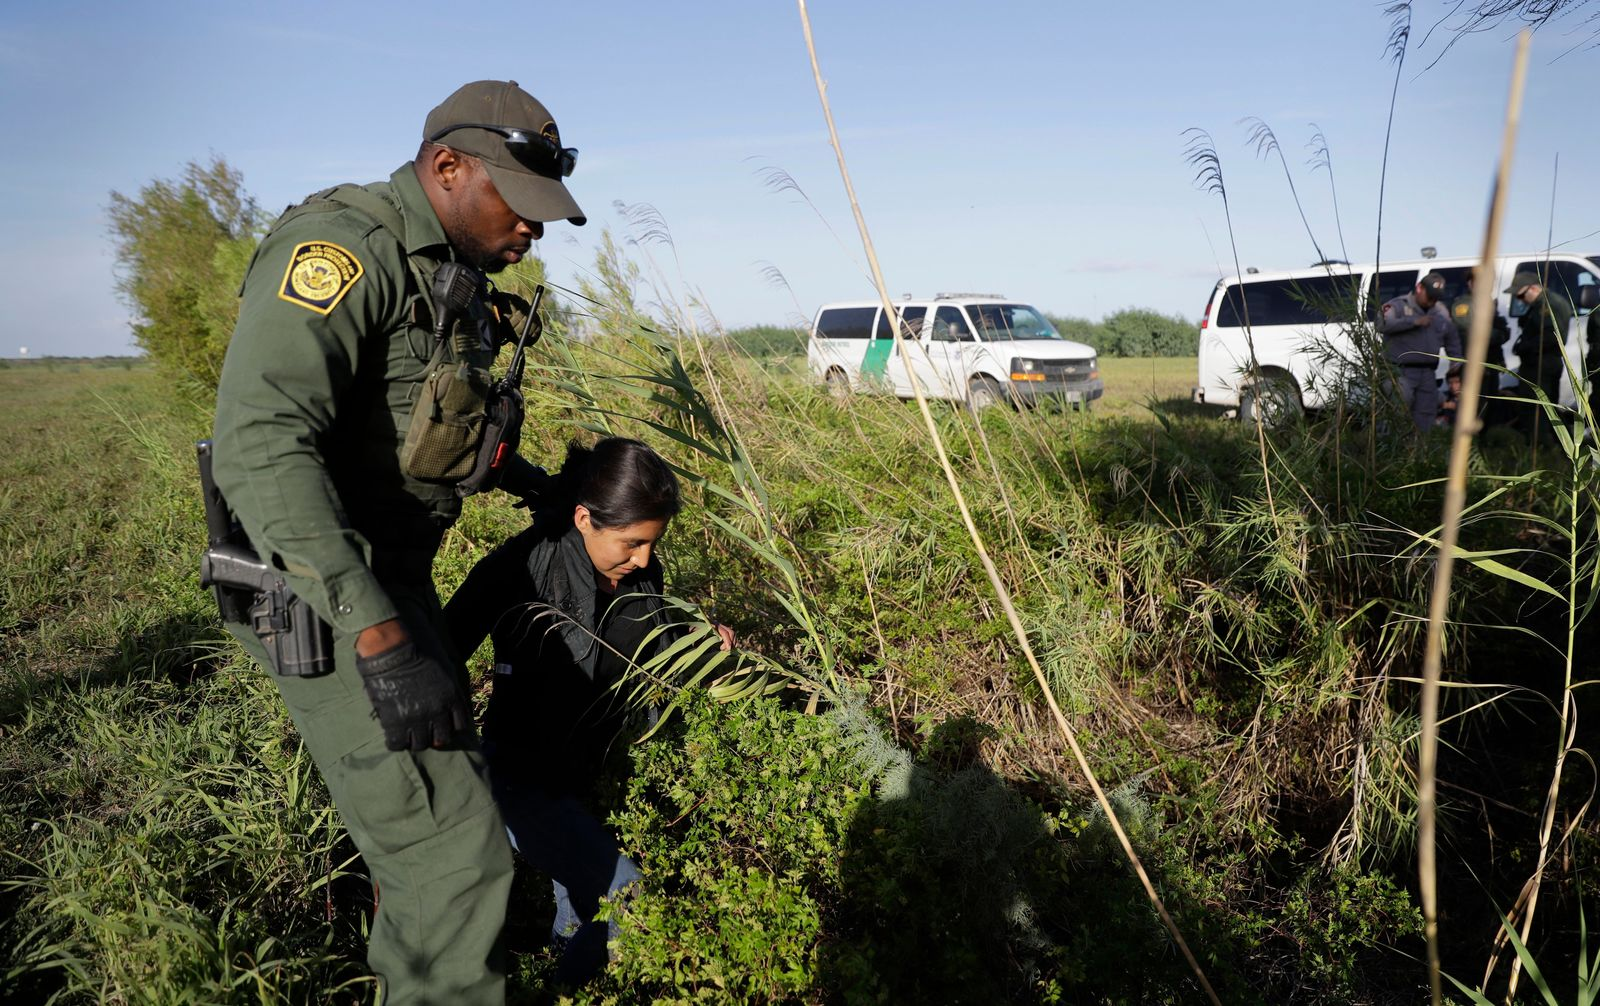 FILE - In this Aug. 11, 2017 file photo a U.S. Customs and Border Patrol agent escorts an immigrant suspected of crossing into the United States illegally along the Rio Grande near Granjeno, Texas. (AP Photo/Eric Gay, File)